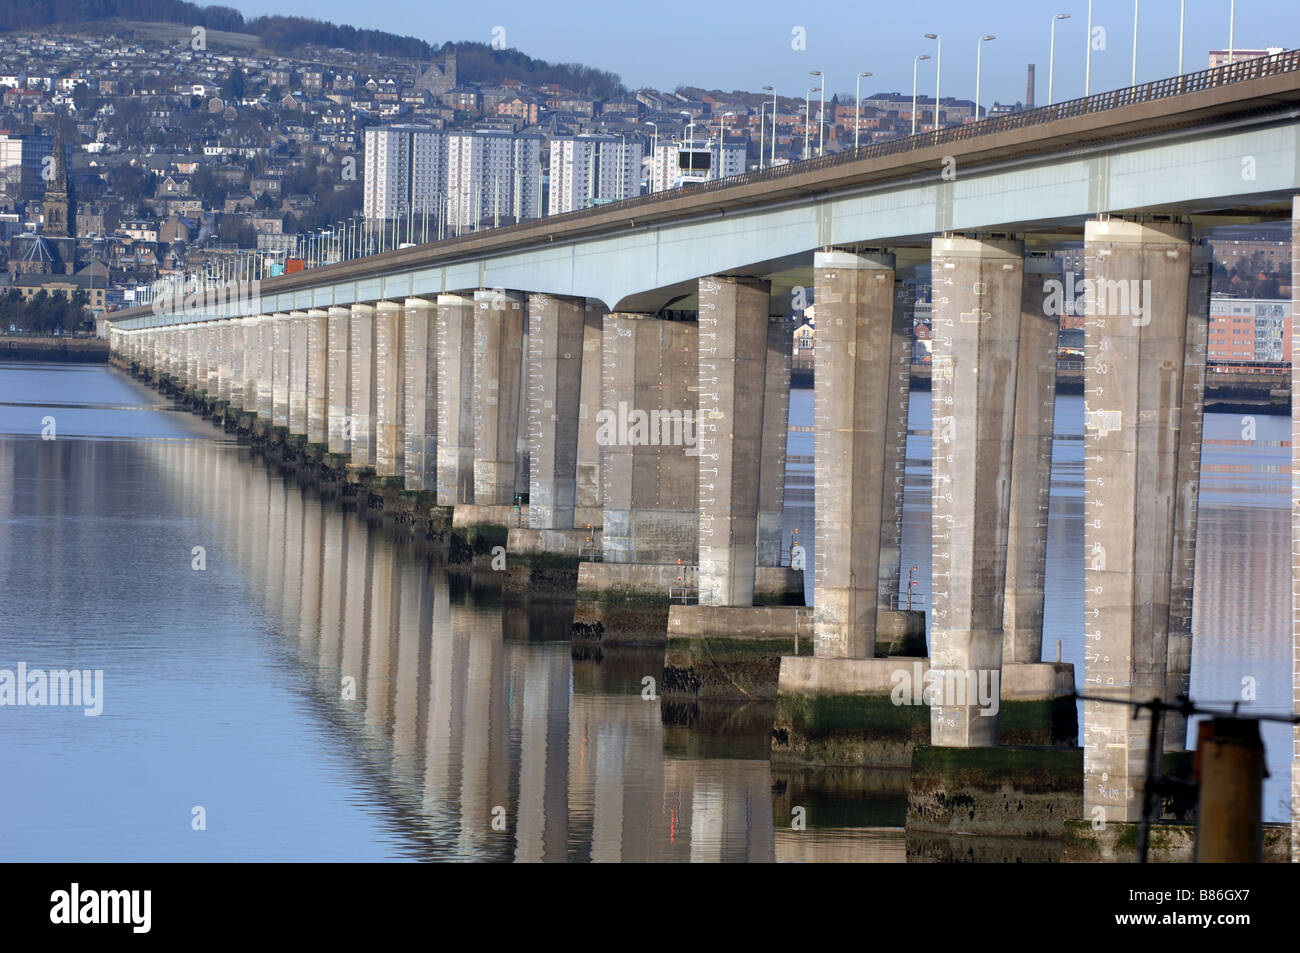 The Tay Bridge across the Tay river into Dundee City in Scotland. - Stock Image